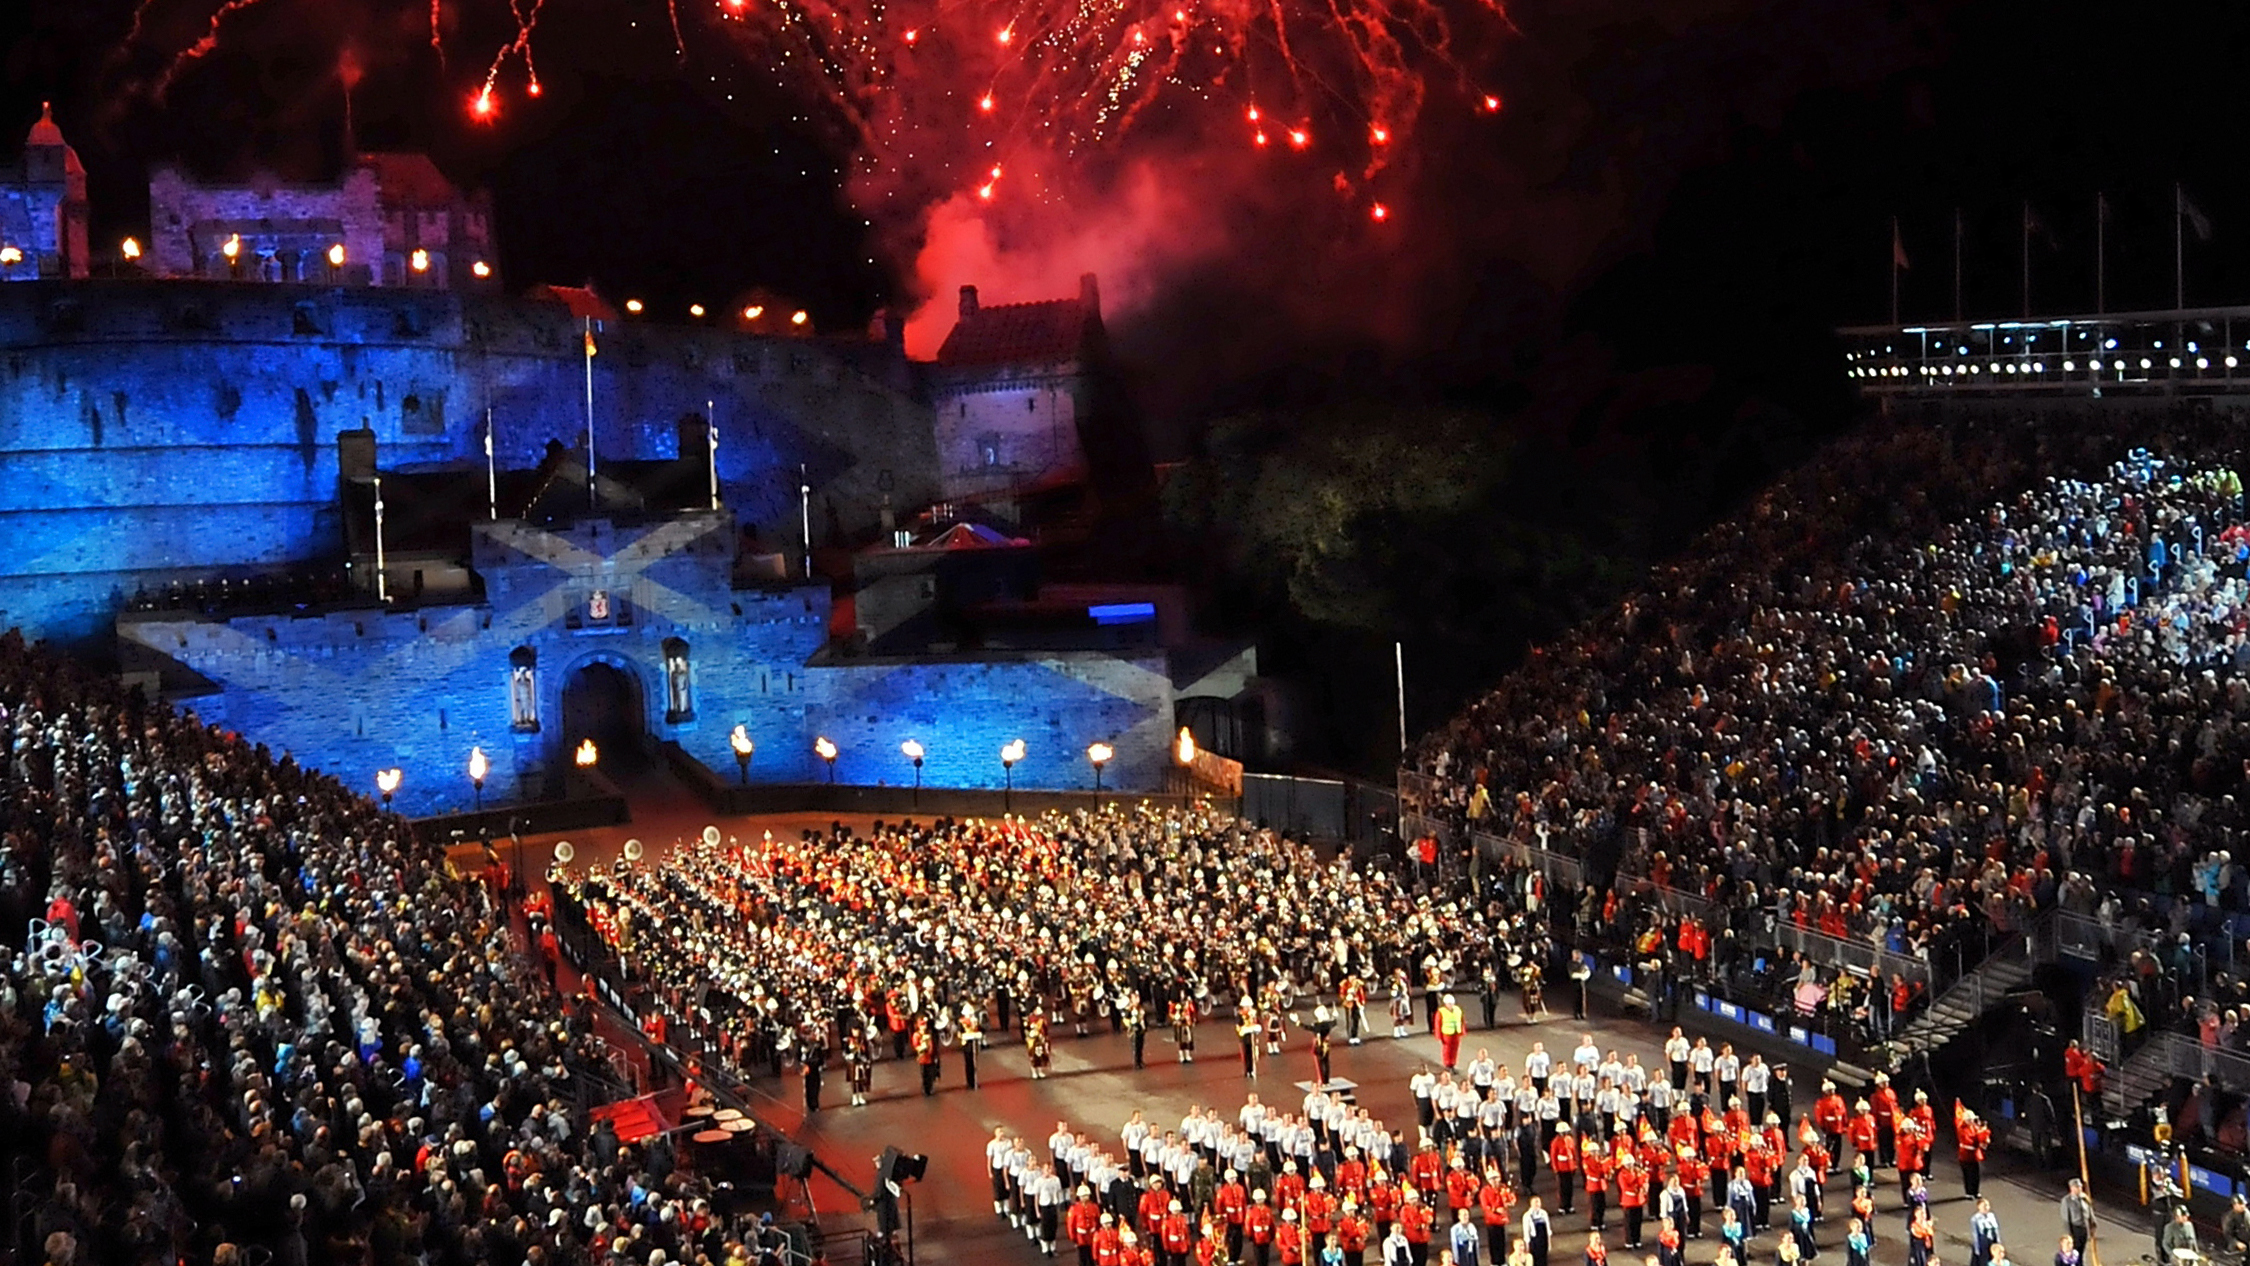 The Royal Edinburgh Military Tattoo is coming to Sydney